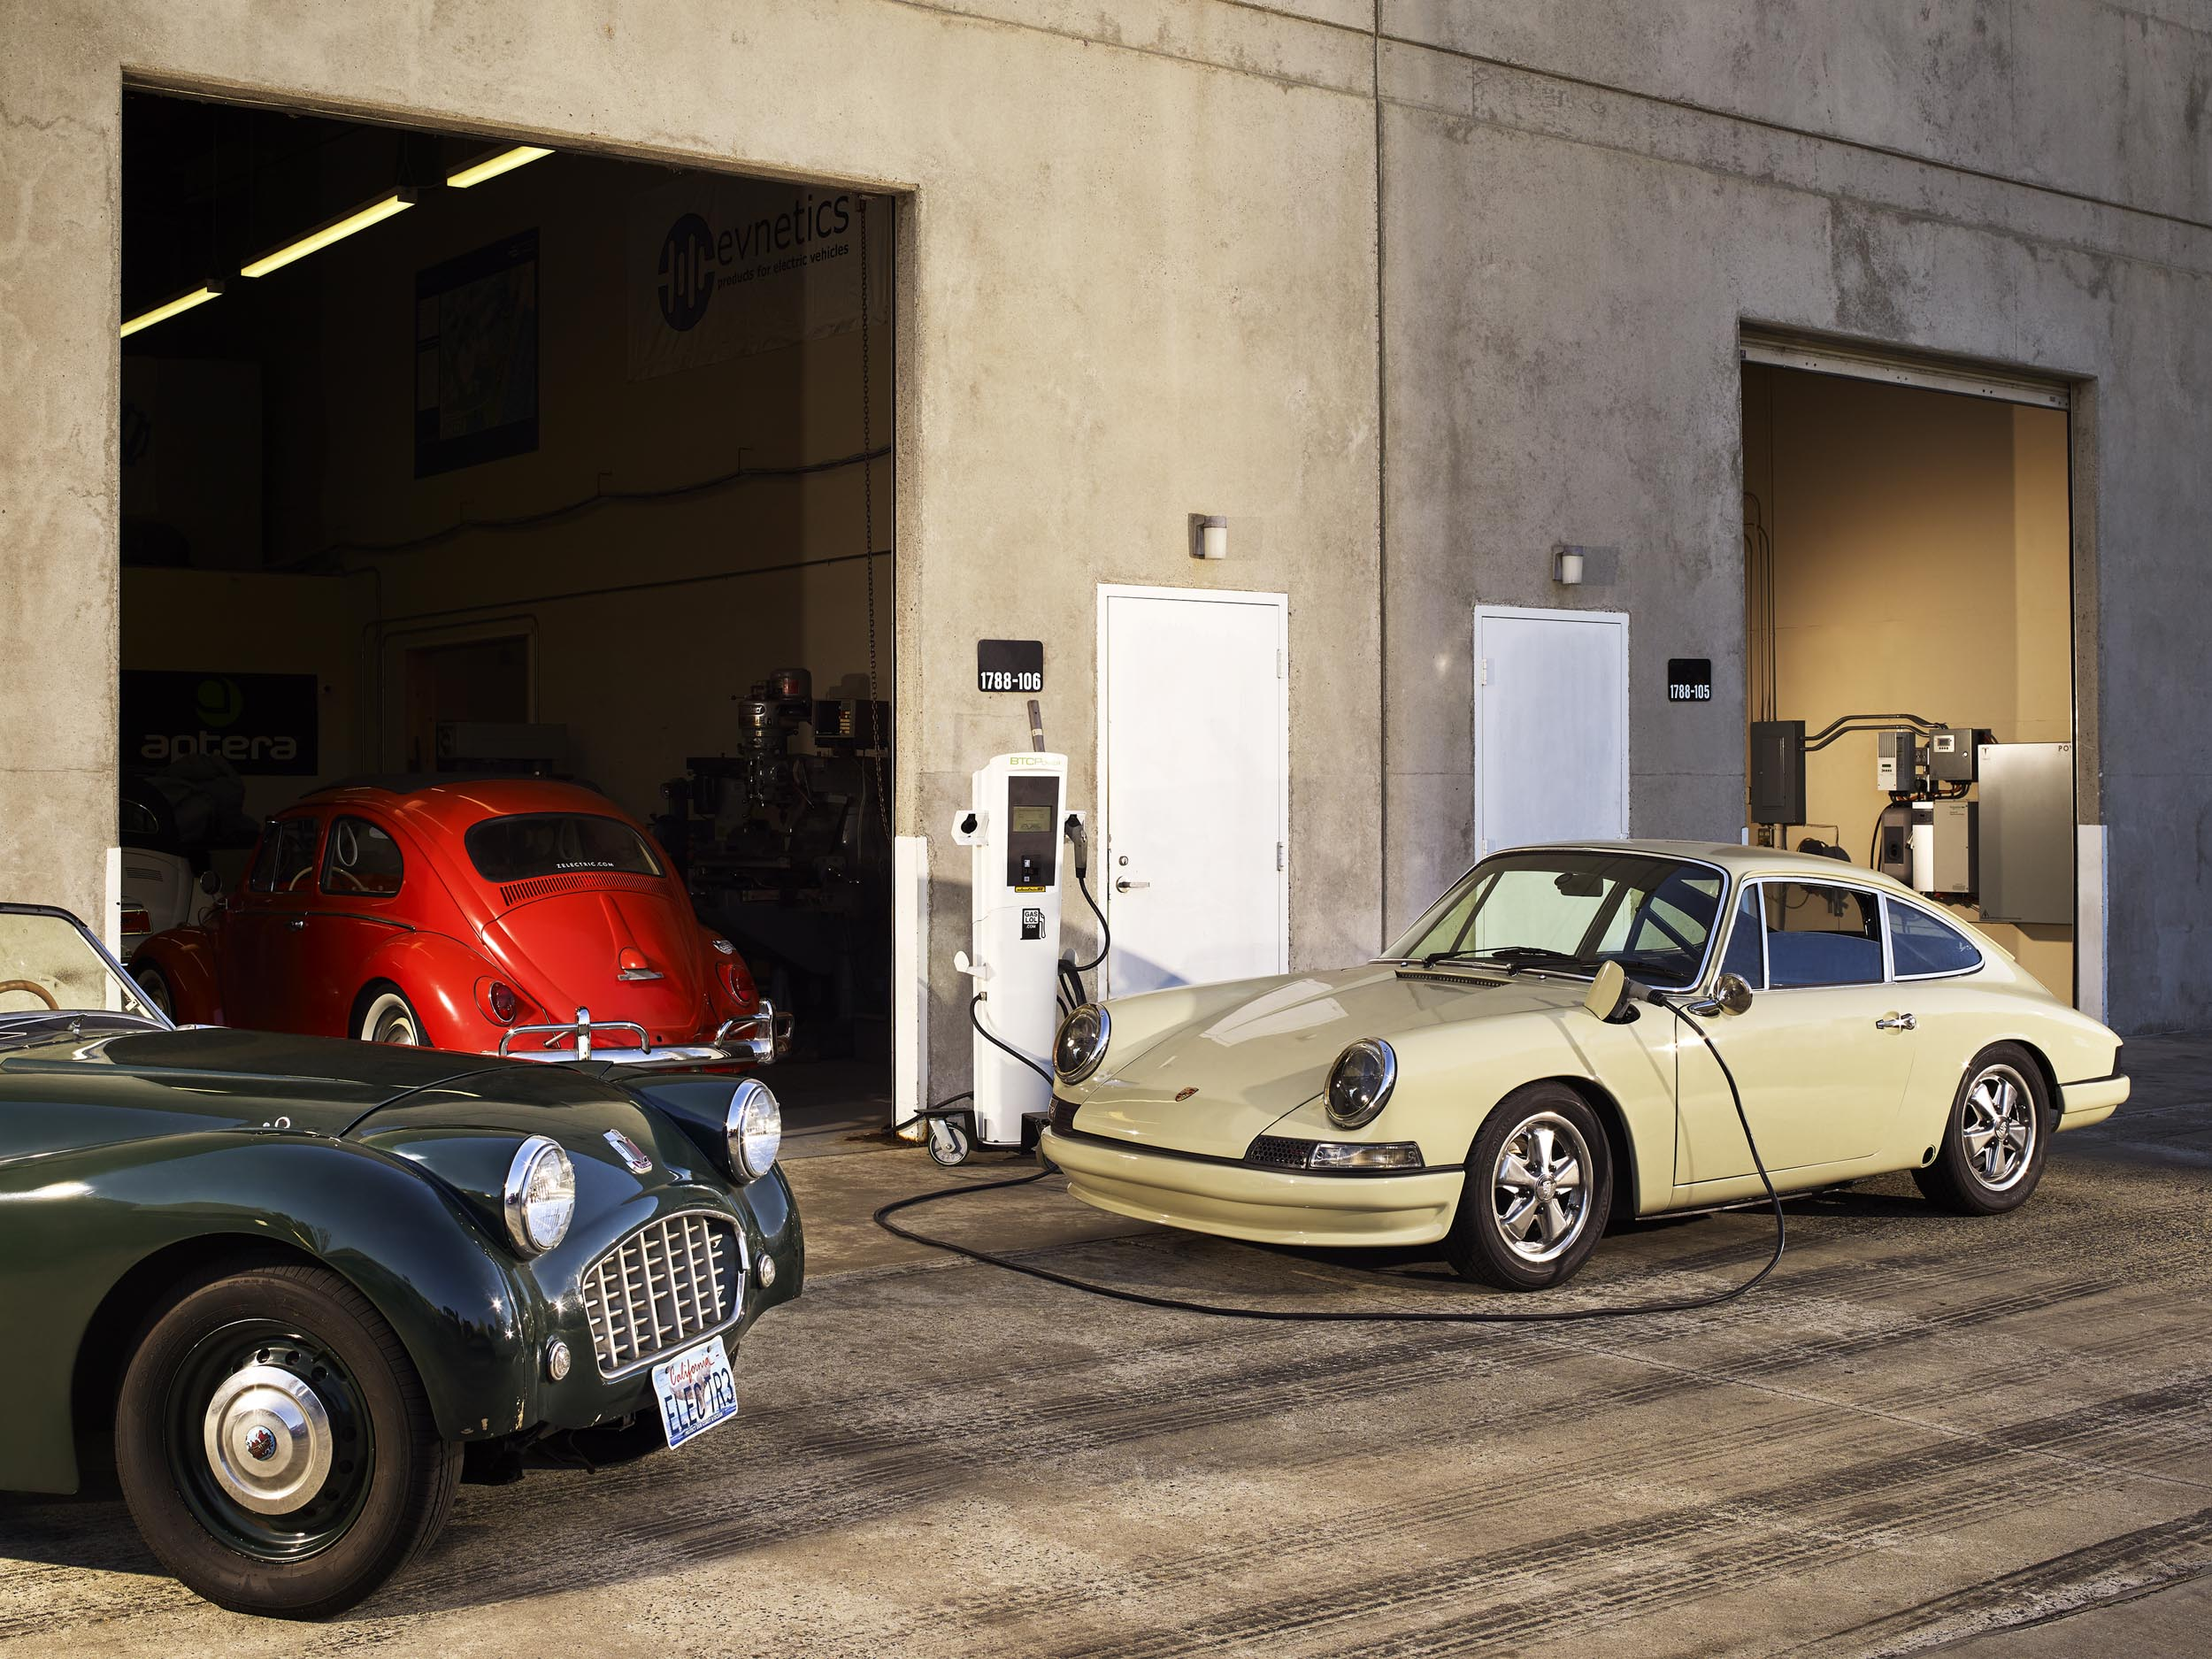 The New Hot Rods Are Souped-Up Vintage Cars With Electric Motors